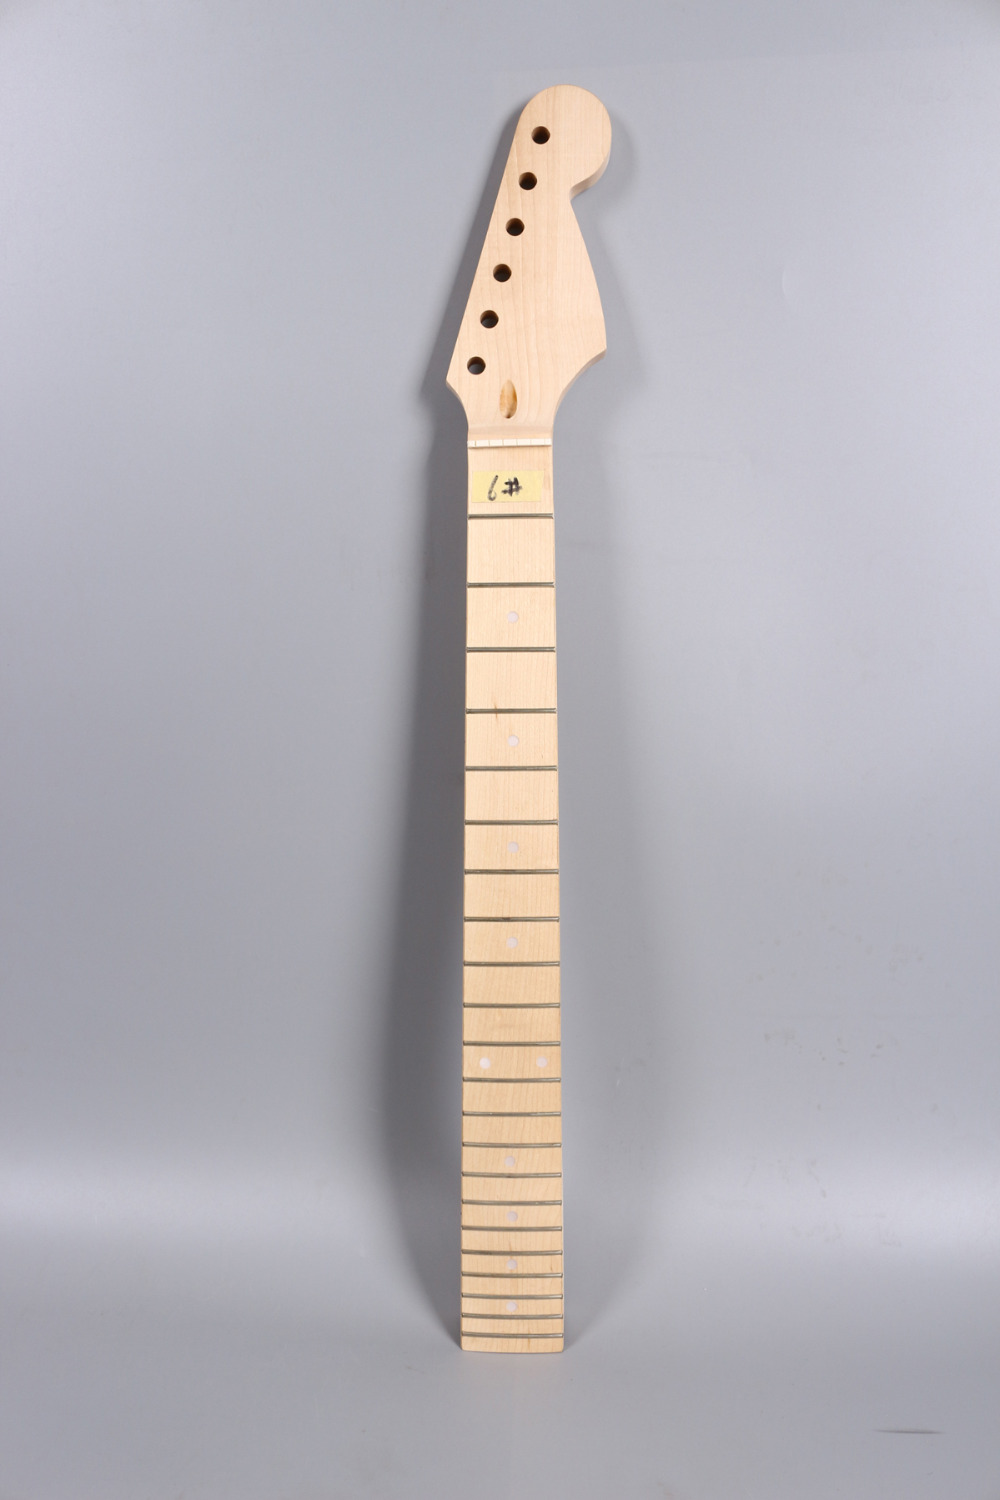 Electric guitar neck Maple and maple wood Fretboard 22 fret 25.5 no inlay nut width 43mm  heel 55-56mm 005# 1x electric guitar neck mahogany maple wood fretboard truss rod 22 fret 25 5